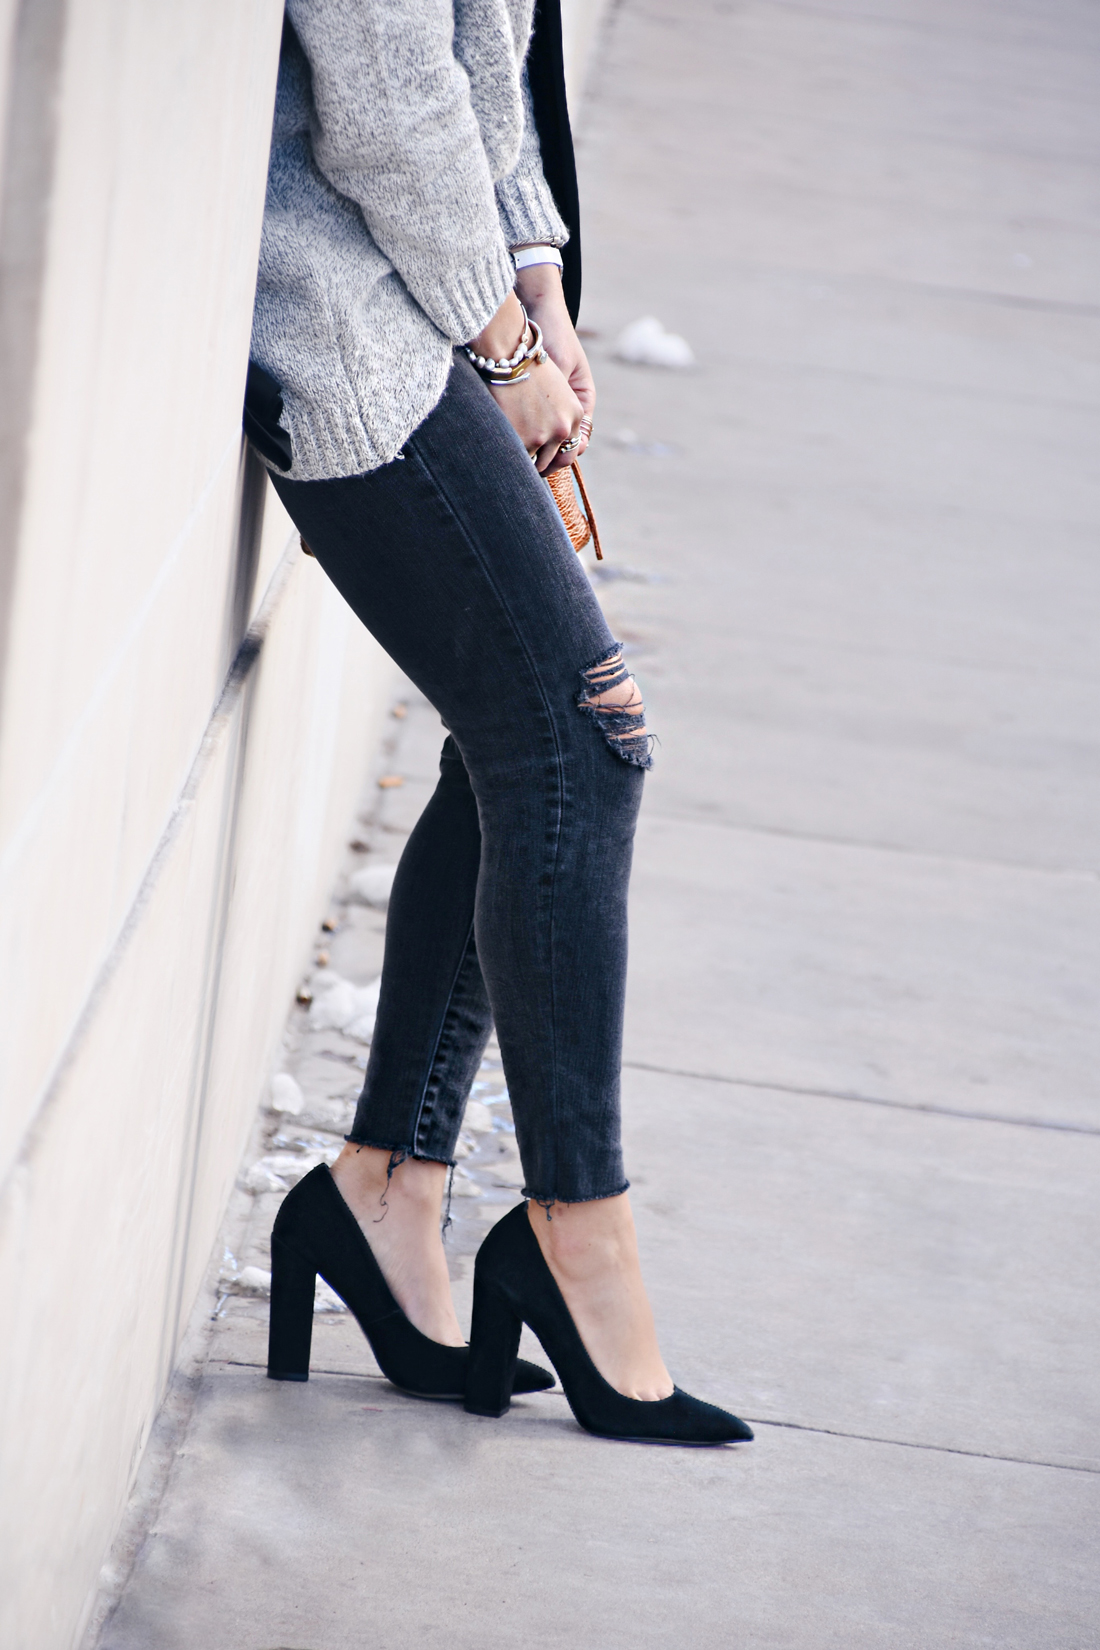 0a8c60b9a025 Steve Madden black pumps and Madewell jeans